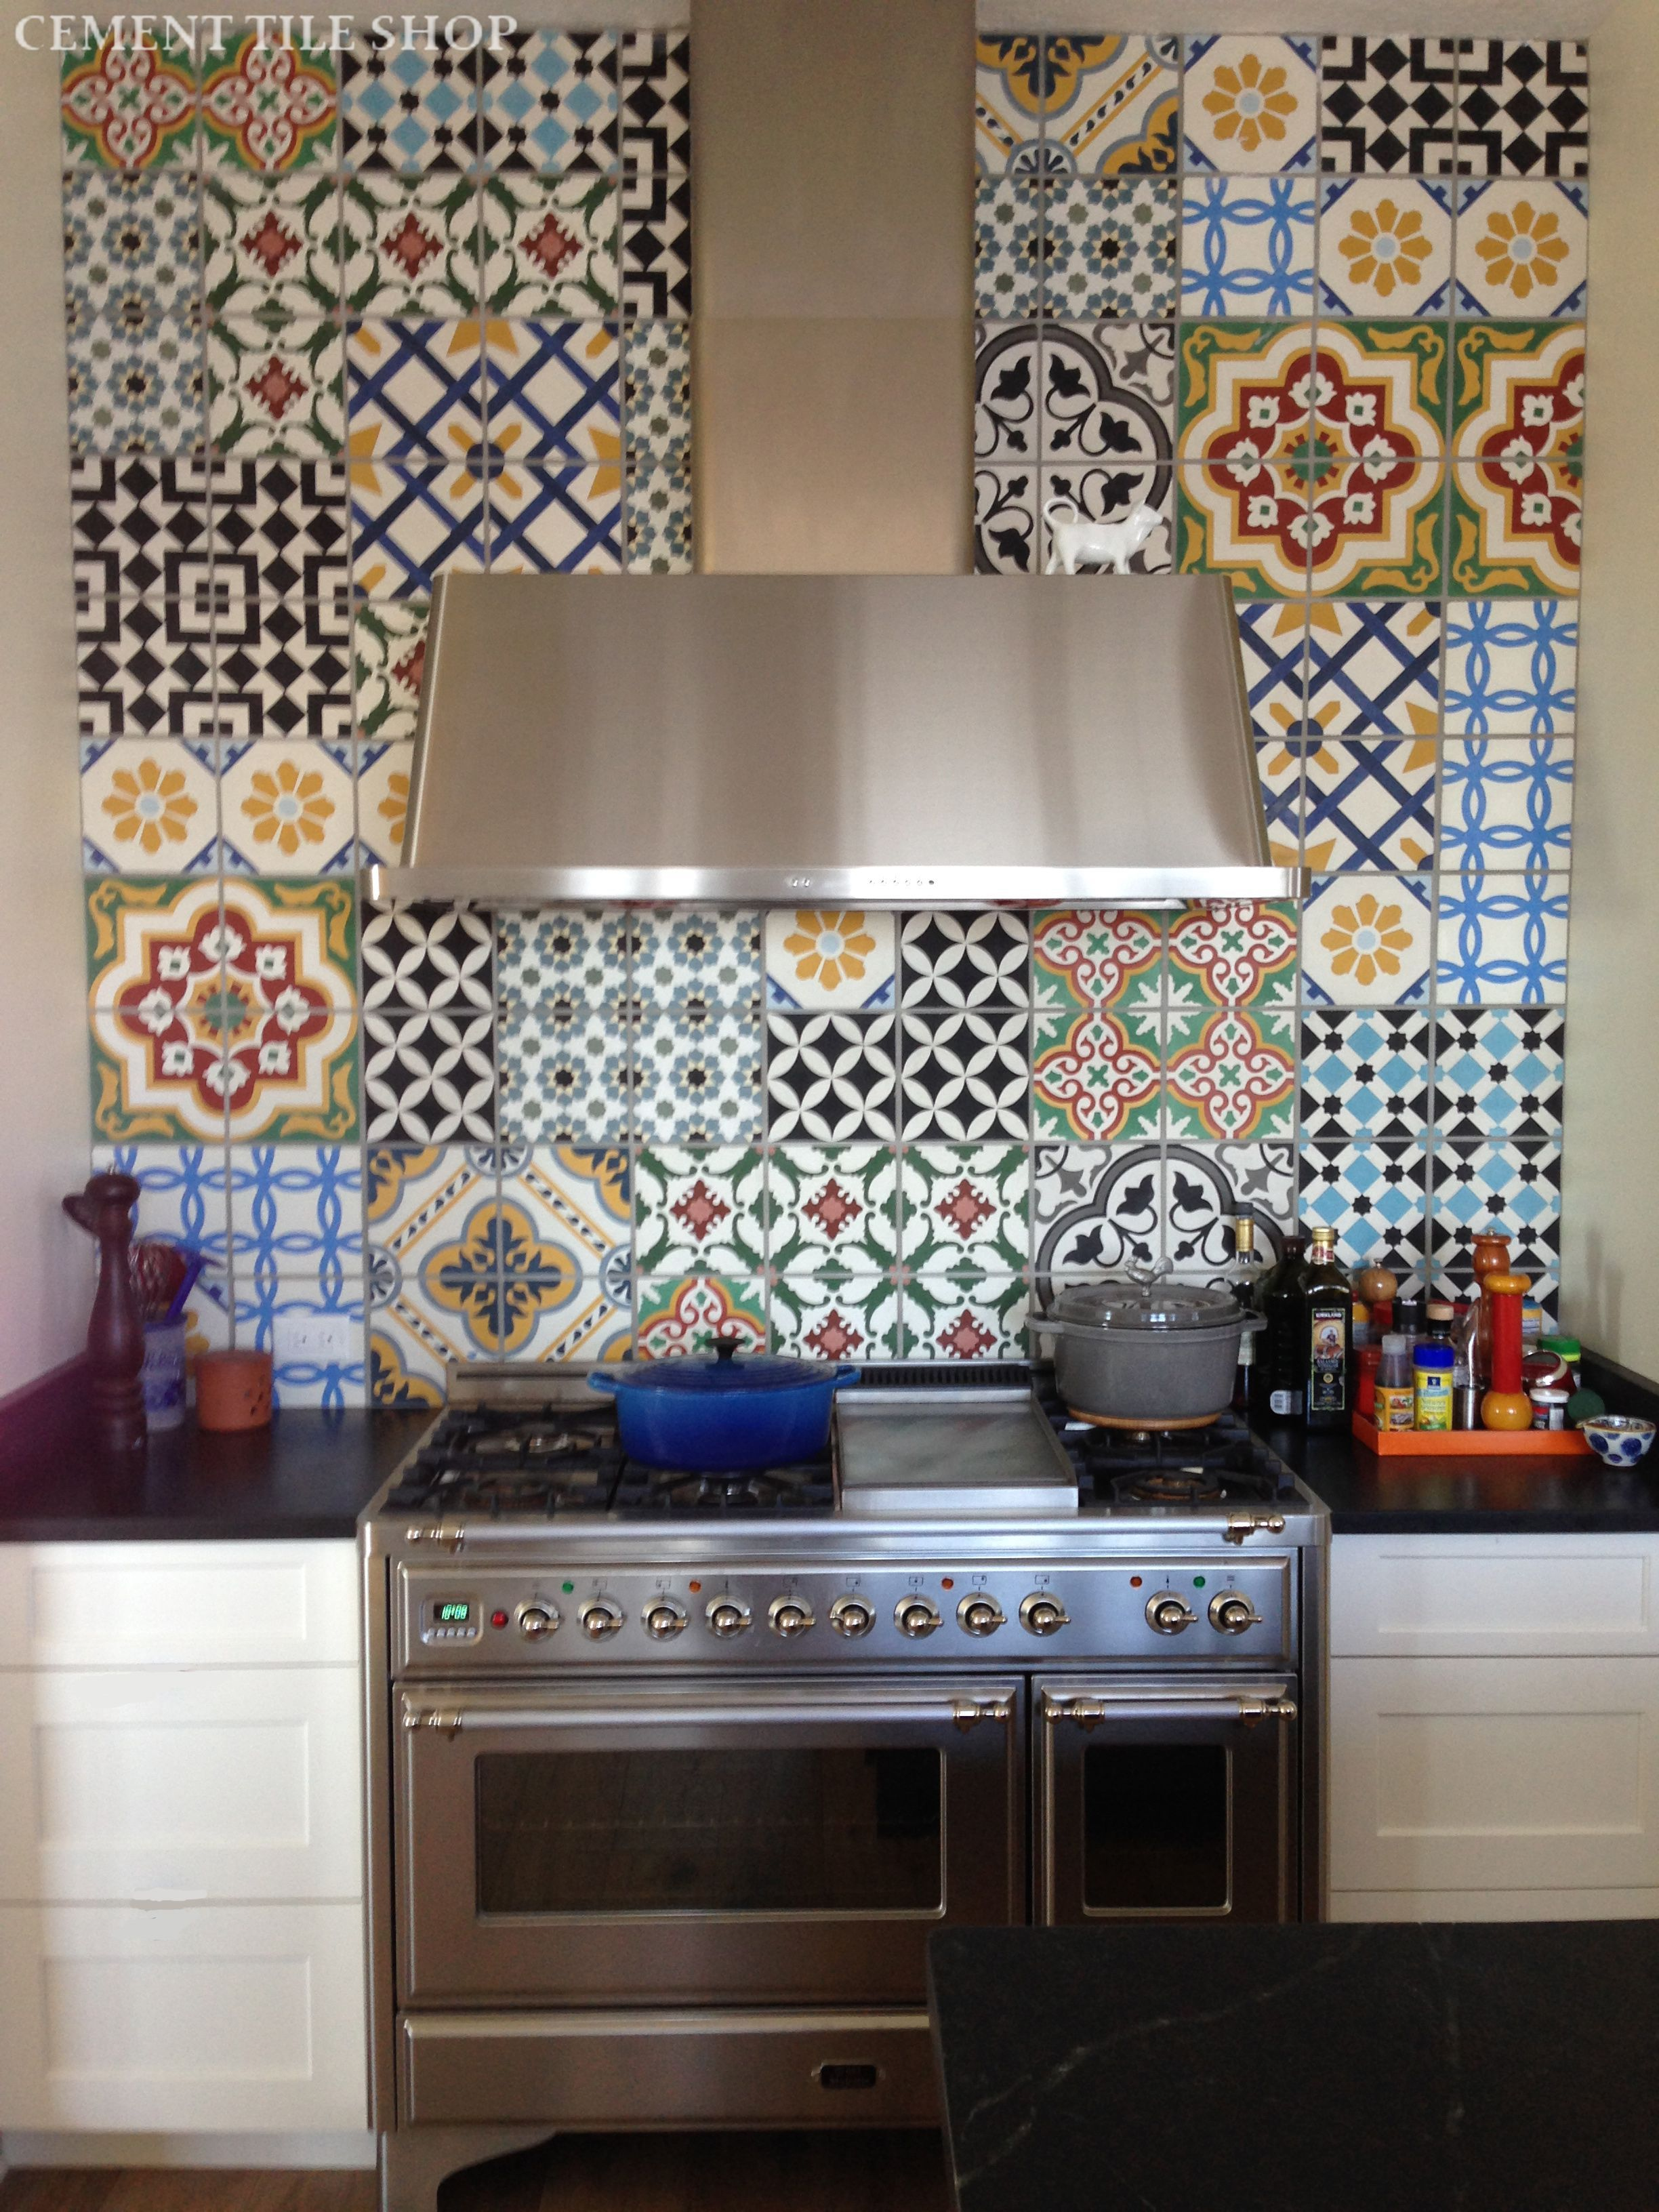 Kitchen Patterns And Designs Cement Tile Shop Handmade Cement Tile Patchwork Pattern We